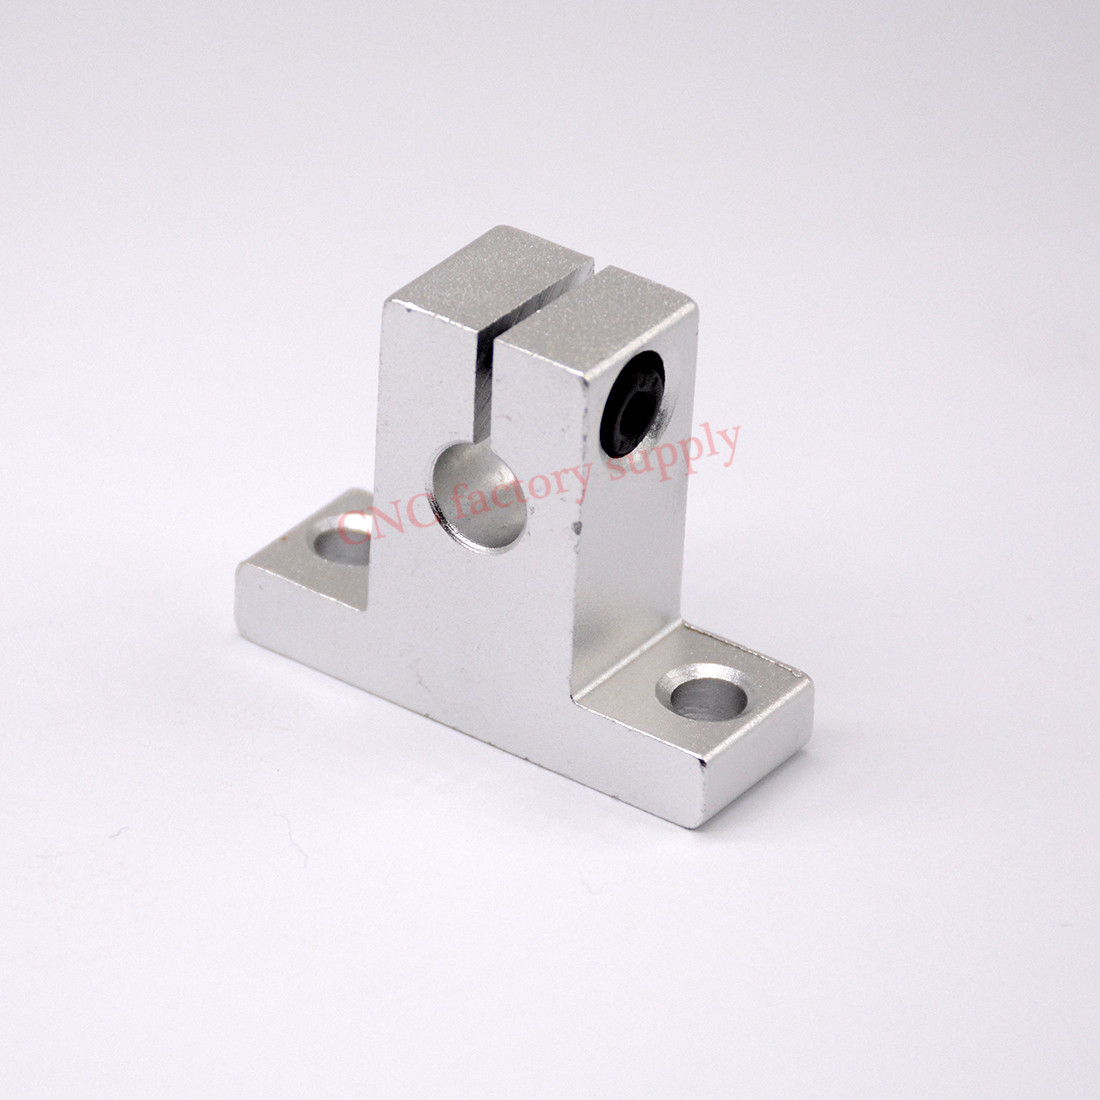 Hot sale 1pc SK12 12mm linear bearing rail shaft support XYZ Table CNC Router SH12A sk16 sh16a 16mm linear rail shaft support xyz table cnc 2pcs lot